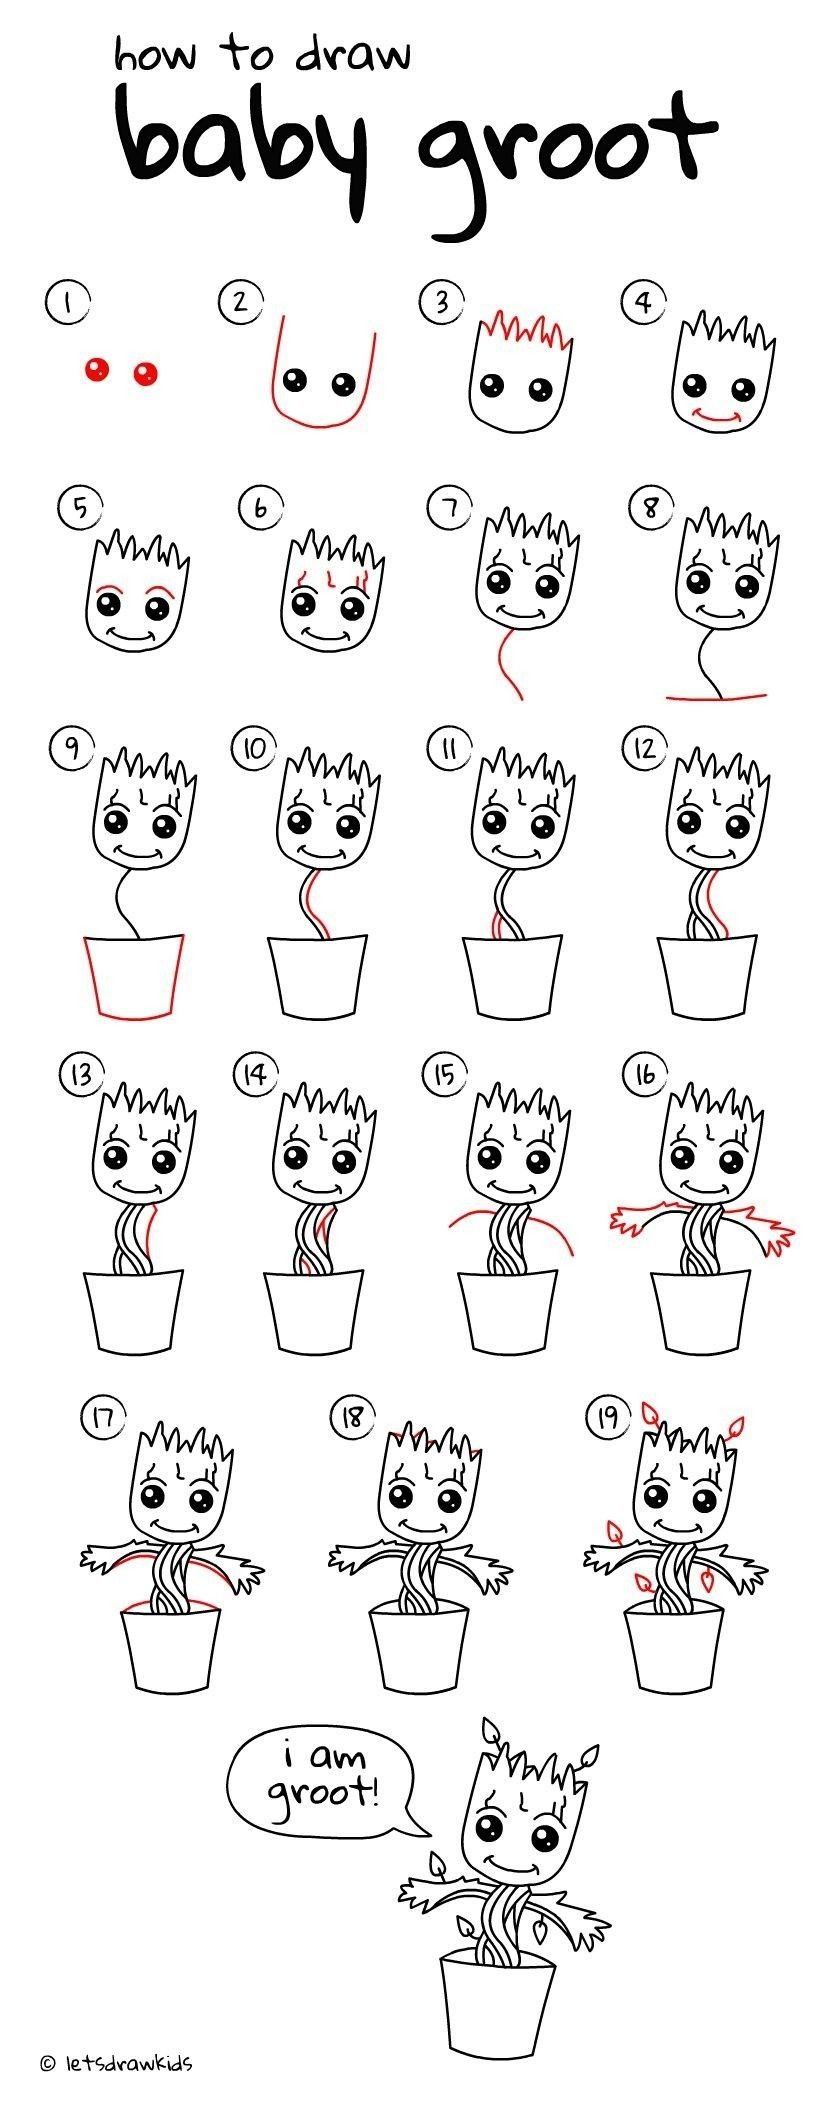 Discover Ideas About How Draw To Baby Groot Easy